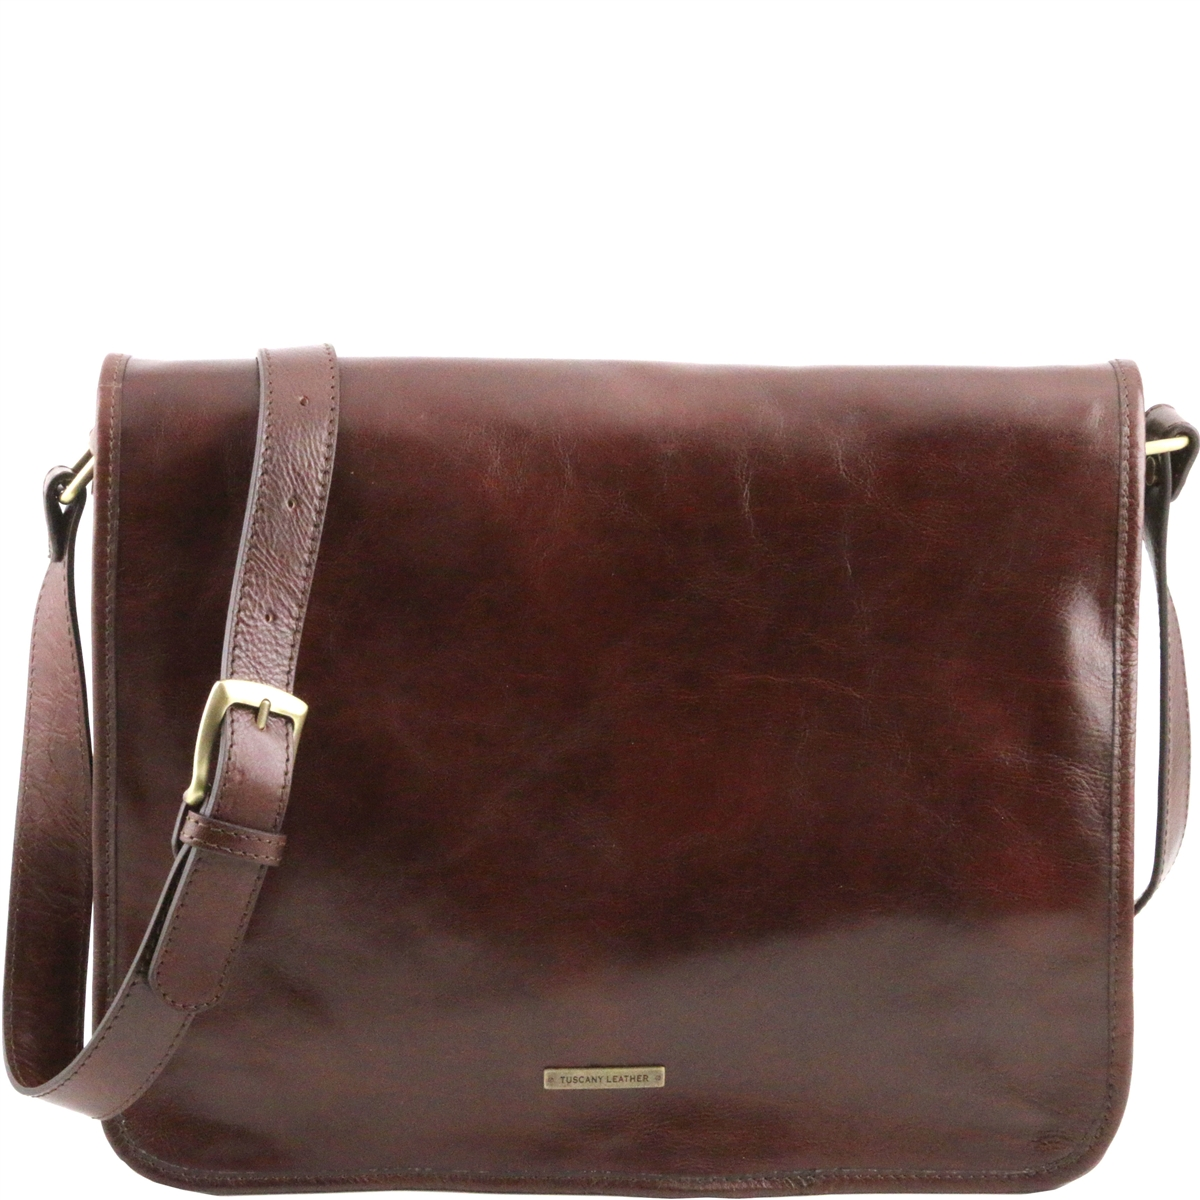 Tuscany Leather TL141254 Men s Messenger Bag - Large - Brown cb324171dffd8